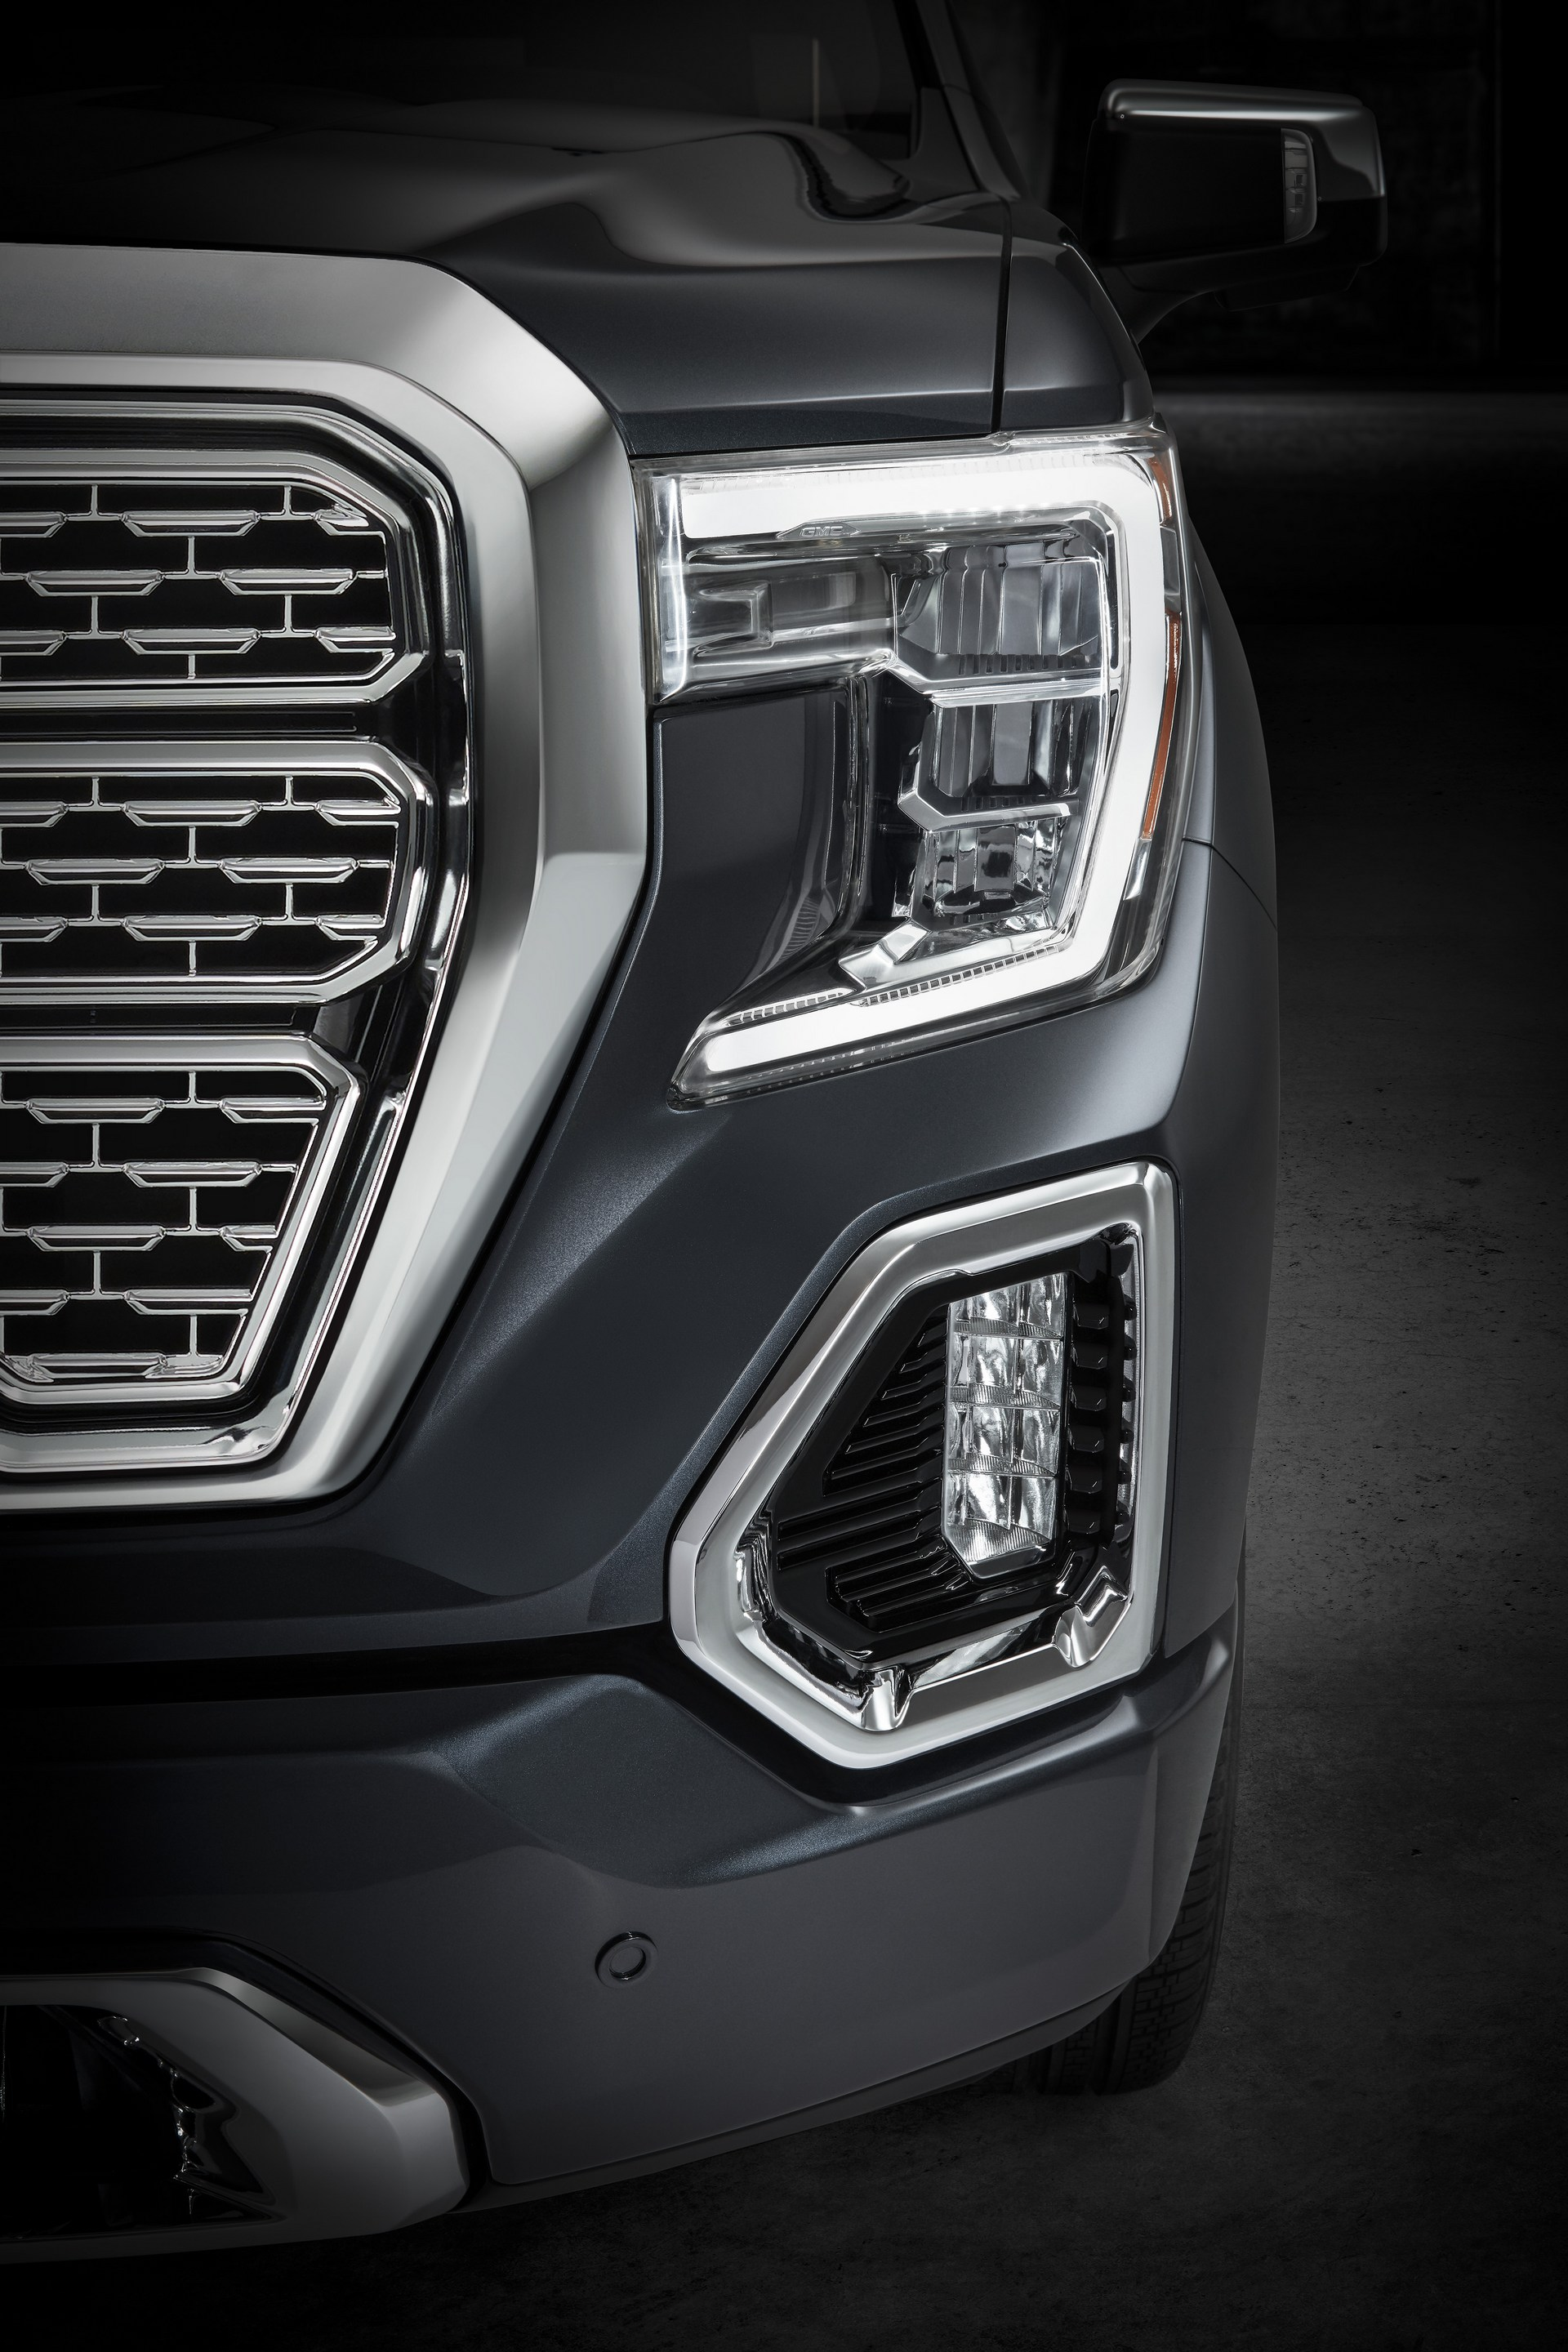 2019 GMC Sierra Denali front lighting signature